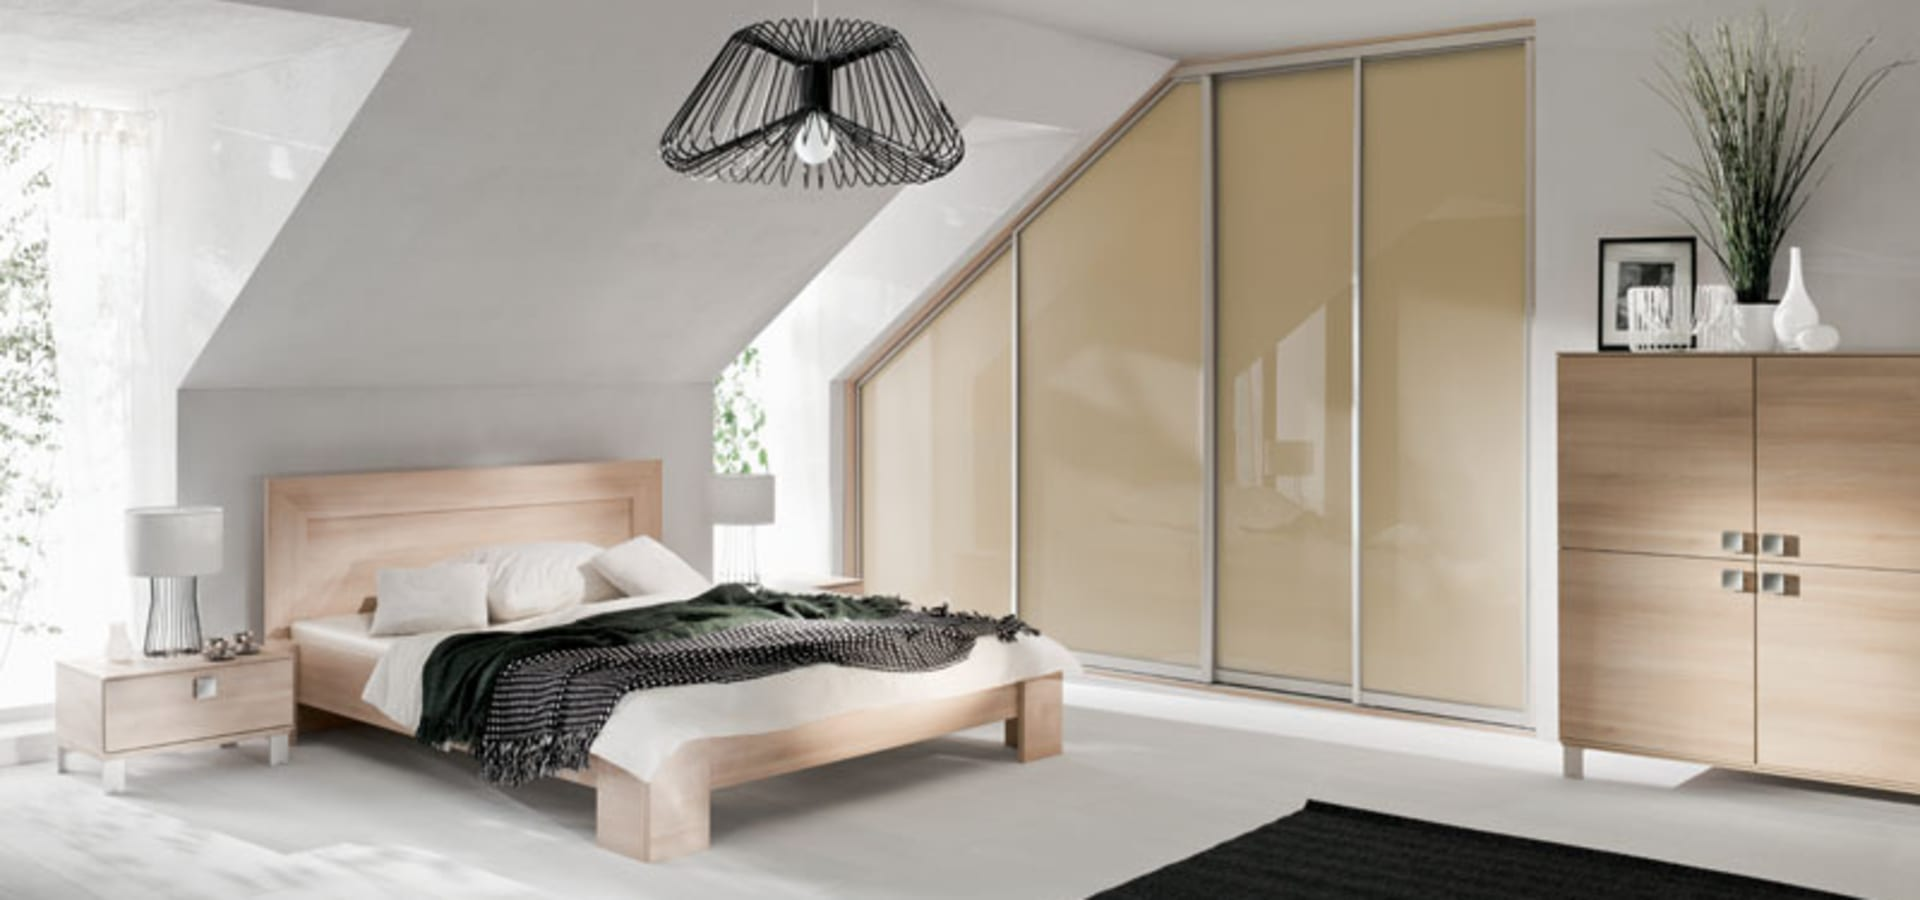 Sliding wardrobe world design